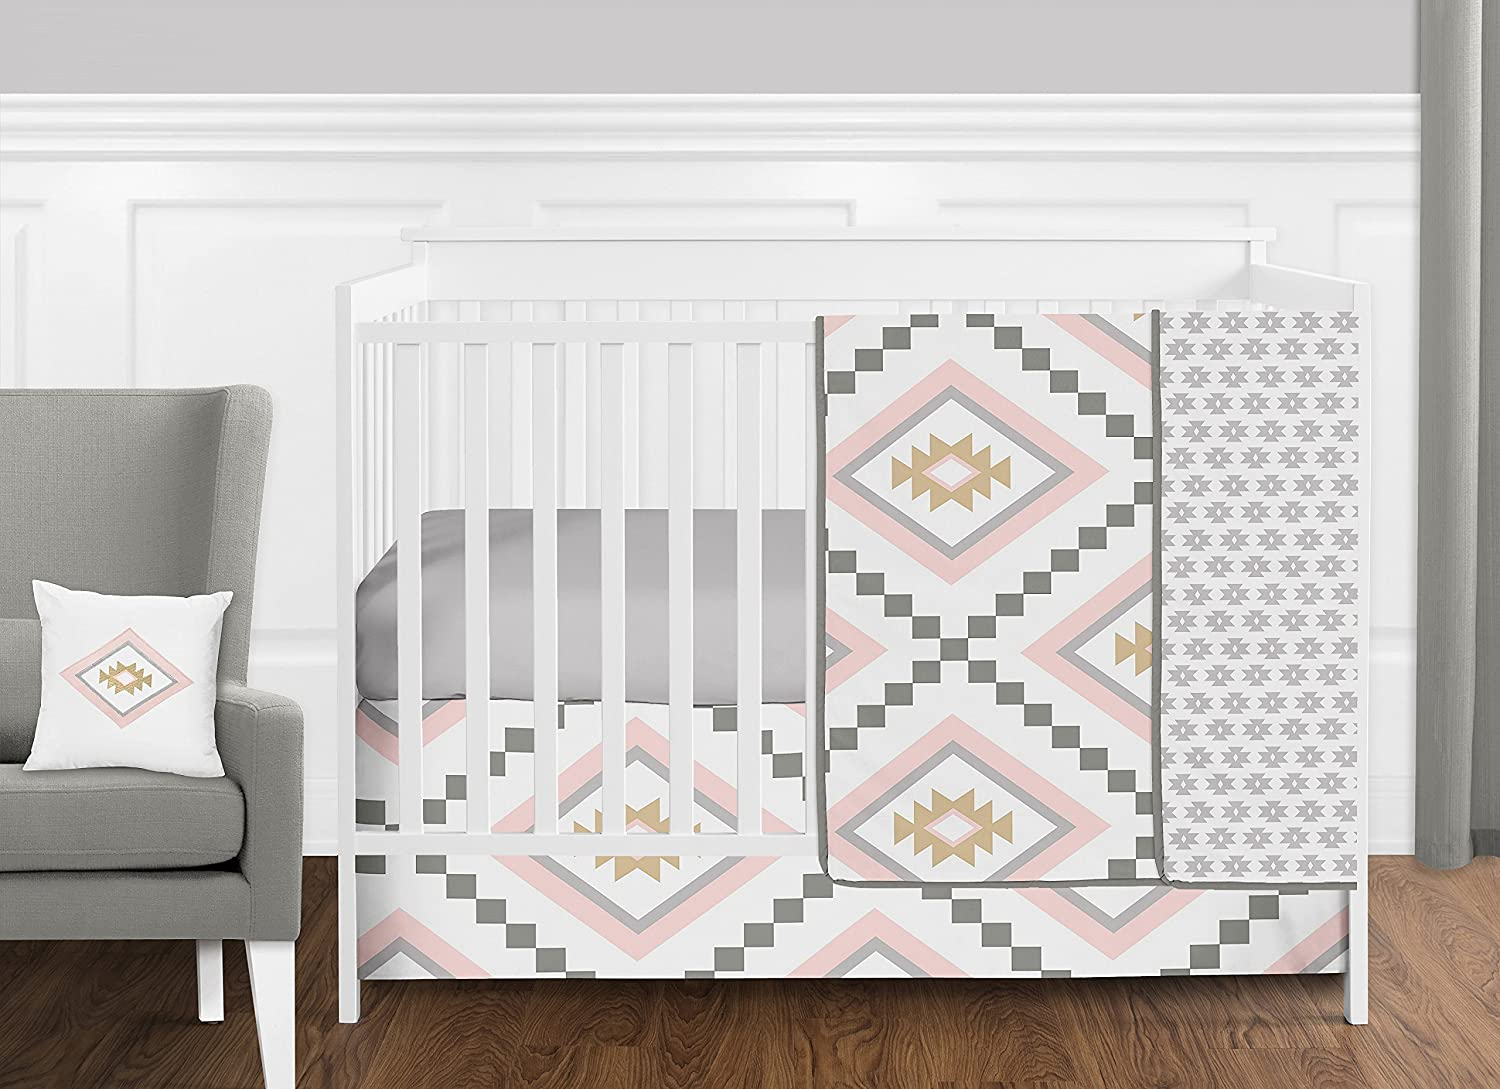 11 pc. Blush Pink and Grey Boho and Tribal Aztec Baby Girl Crib Bedding Set by Sweet Jojo Designs 914z3Dz-QdL